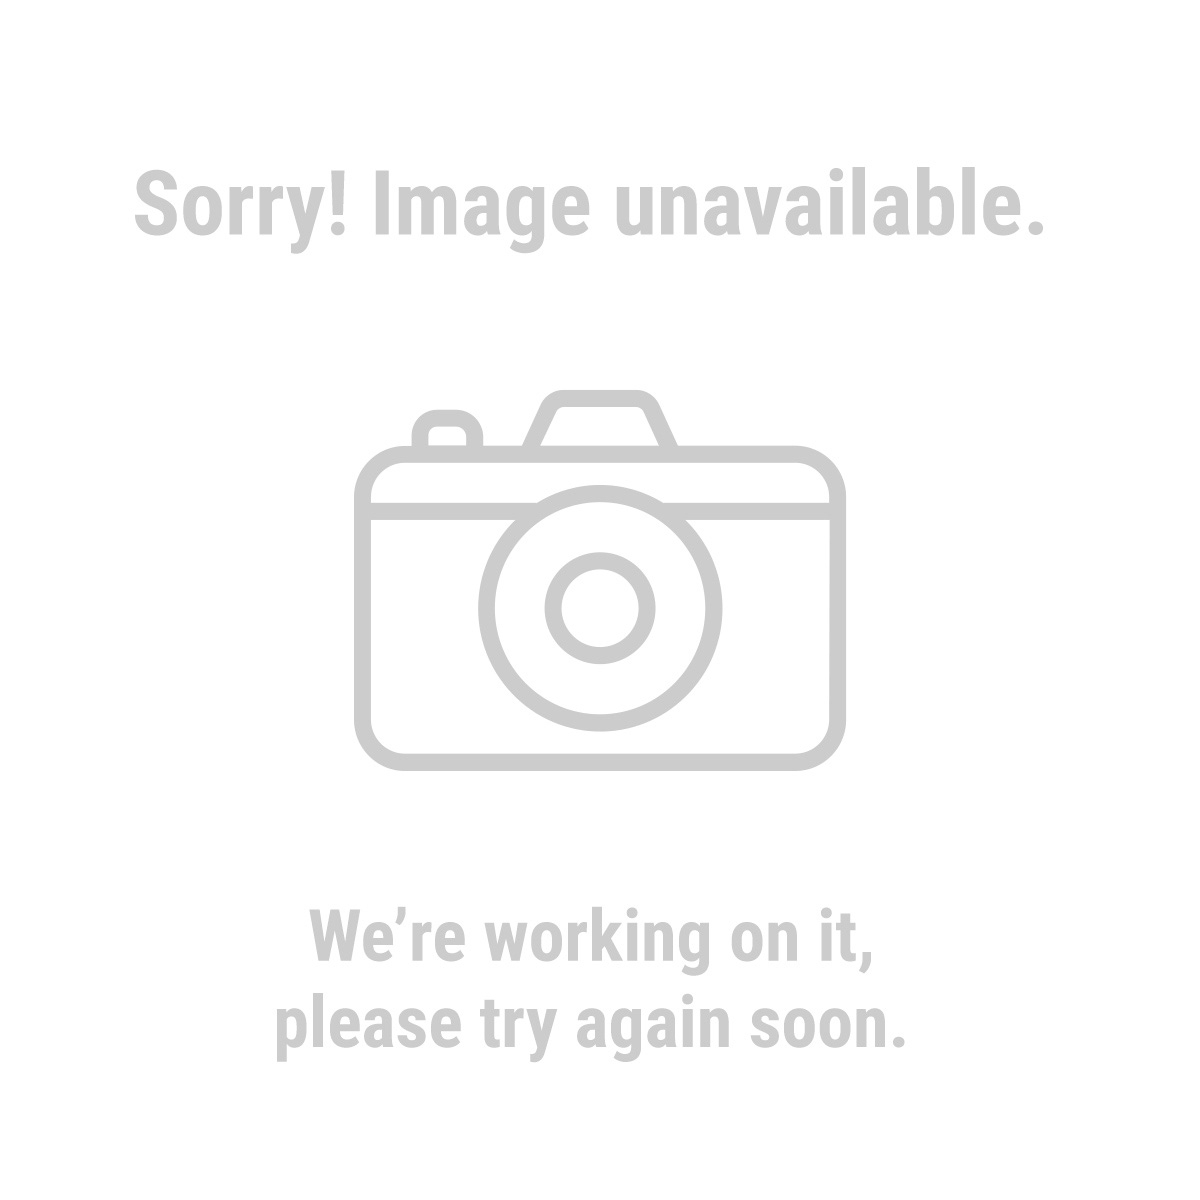 2000 Atv Winch Wiring Diagram Library Further Warn On Badland Wire 2500 Striking In Remote Img